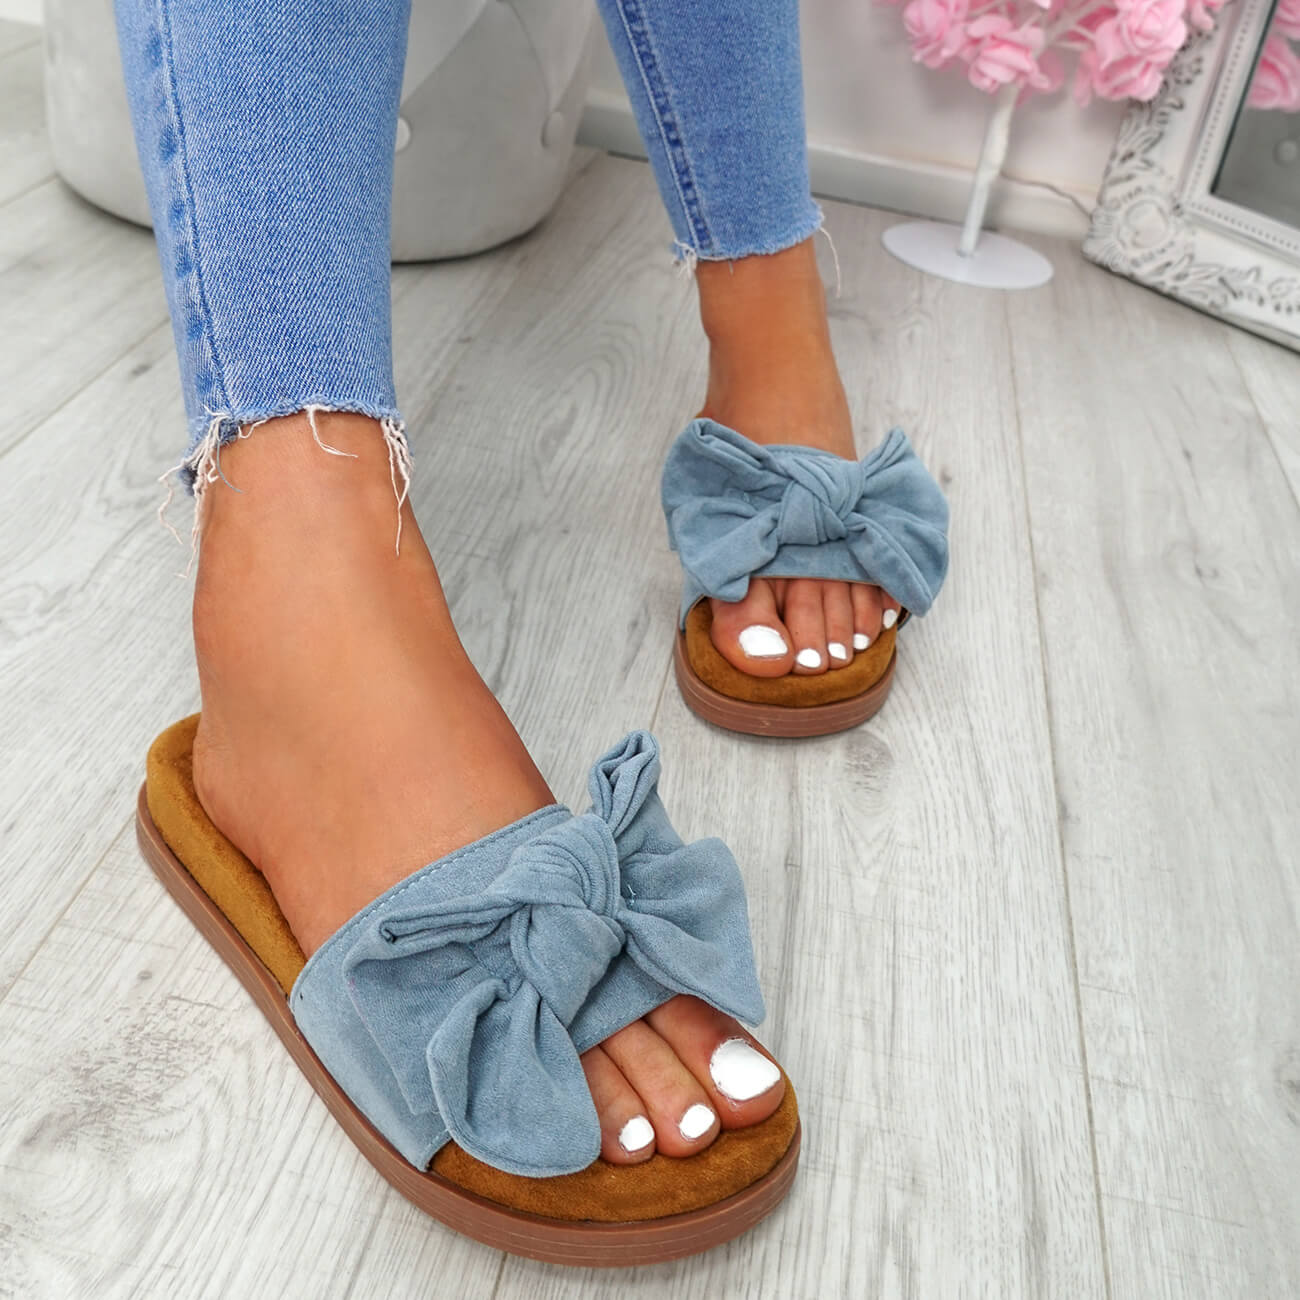 WOMENS-LADIES-FLAT-SANDALS-FRONT-BOW-COMFY-SUMMER-CASUAL-HOLIDAY-SHOES-SIZE-UK thumbnail 18